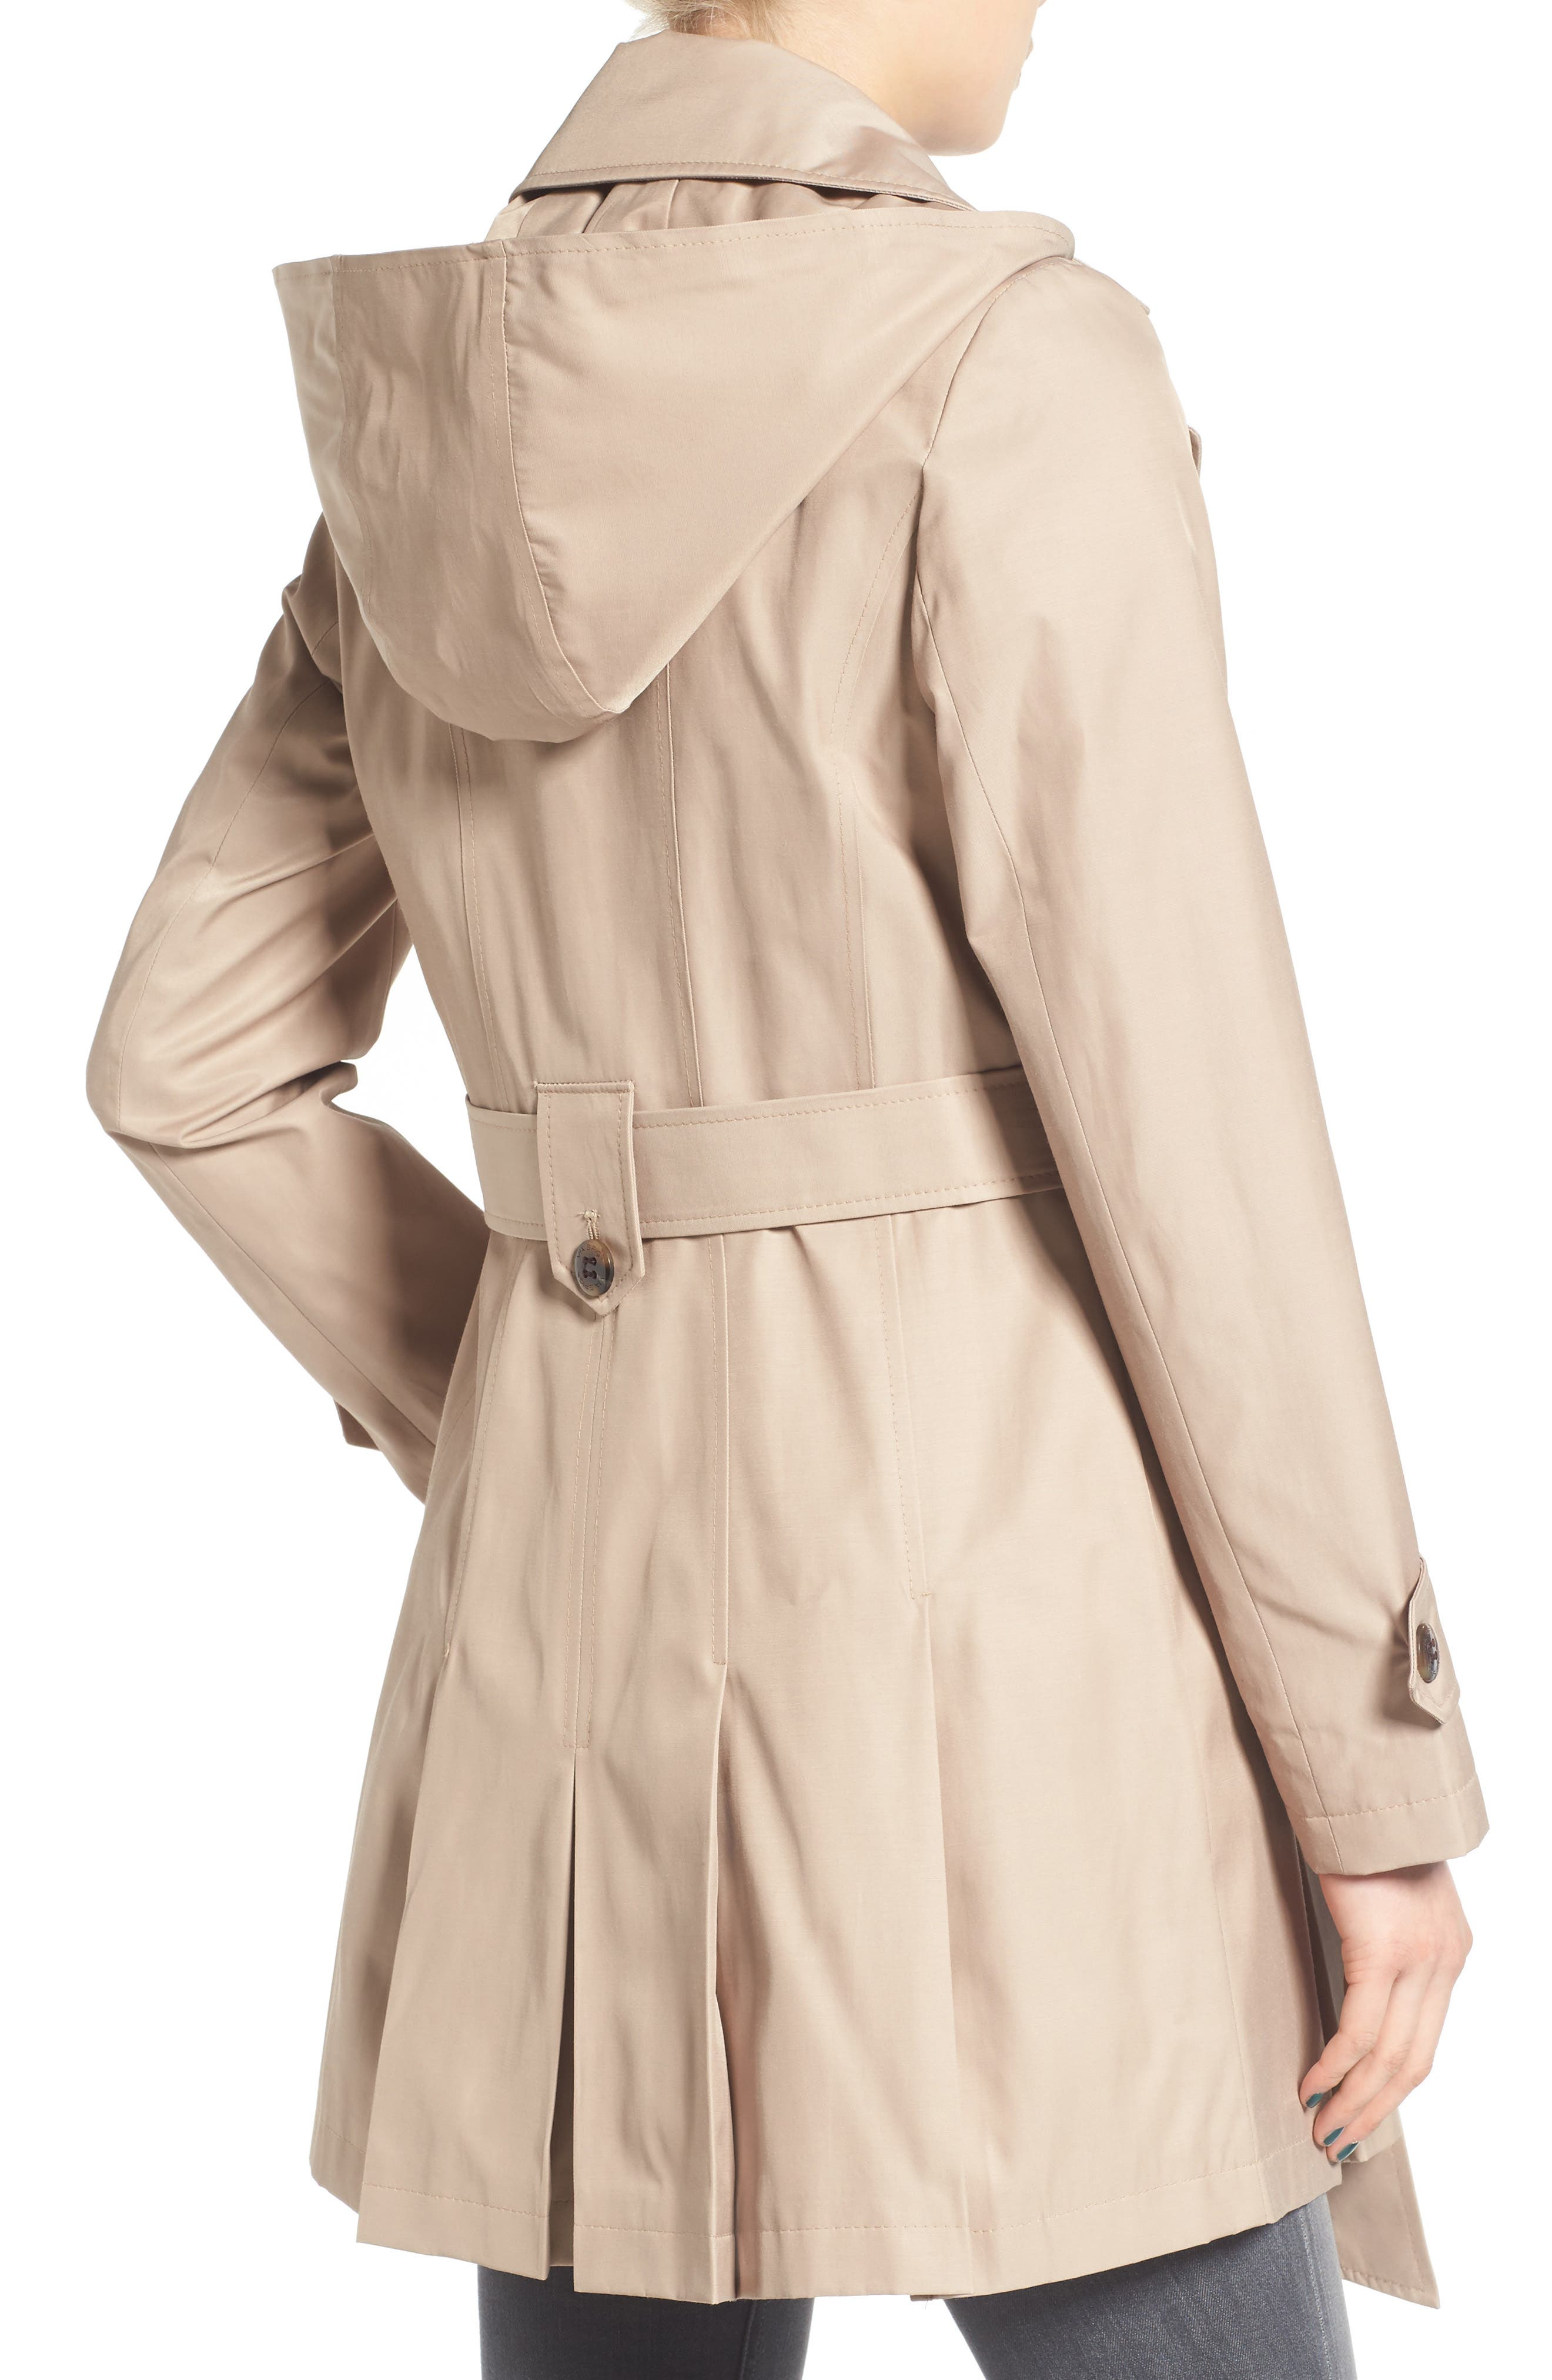 'Scarpa' Hooded Single Breasted Trench Coat,                             Alternate thumbnail 2, color,                             Sand